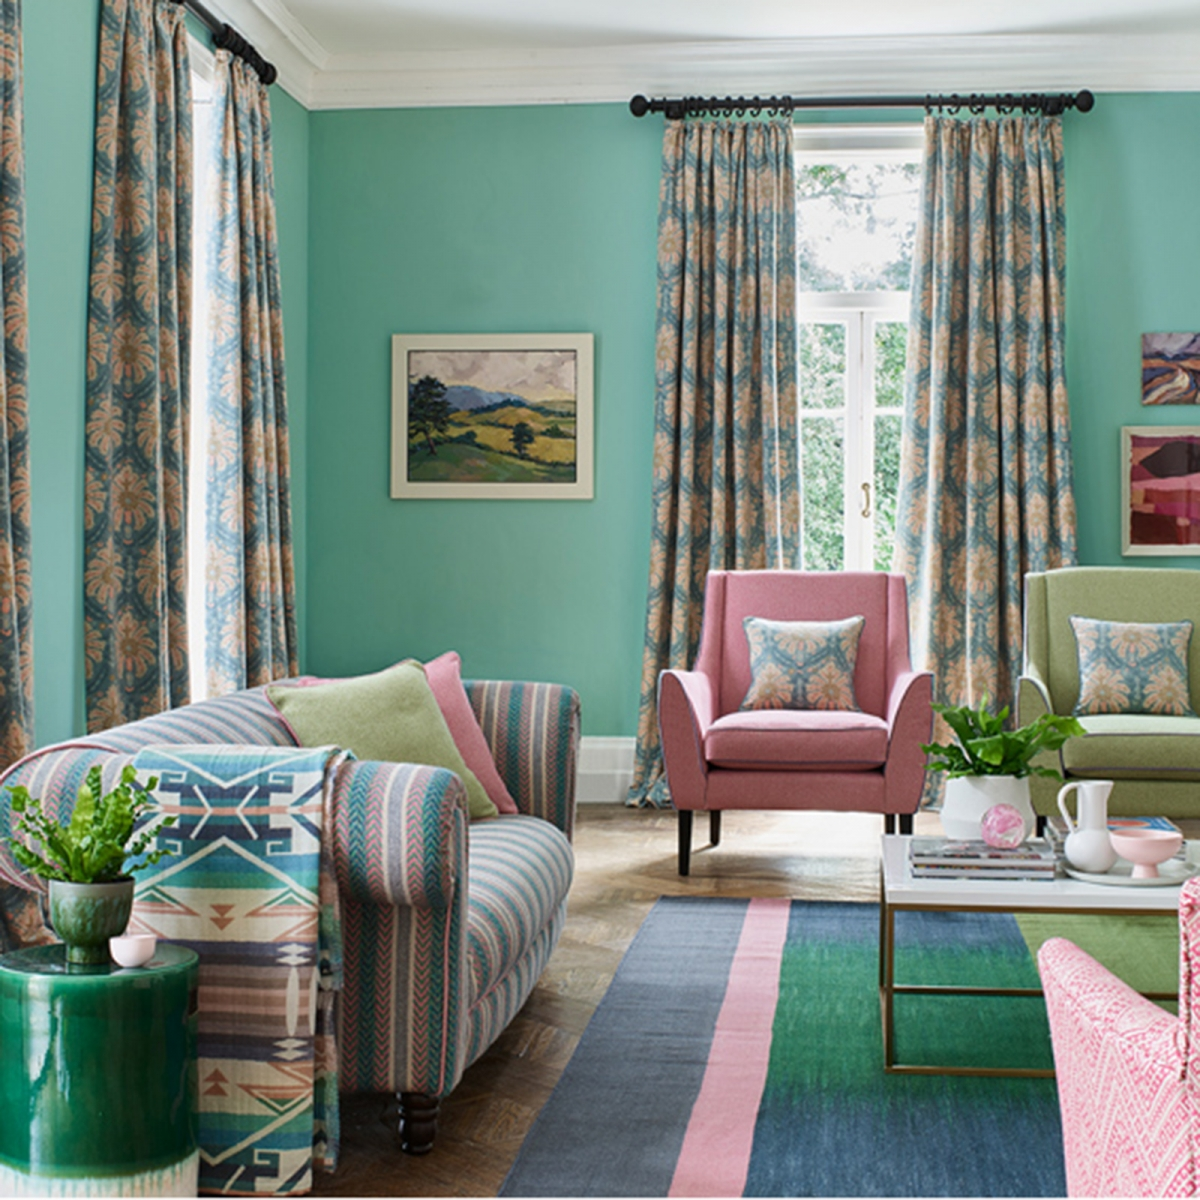 My latest colour crush is Mint green for it's fresh, uplifting tone. This pastel shade works extremely well with pink in varying shades and whether on living room walls, accent pieces or light fixtures, it will create a modern and inviting space. Mint is set to be a key colour trend this year and well into 2020. Check out the blog for top tips and inspiration on using this hue. #sophierobinson #mint #colourcrush #lovecolour